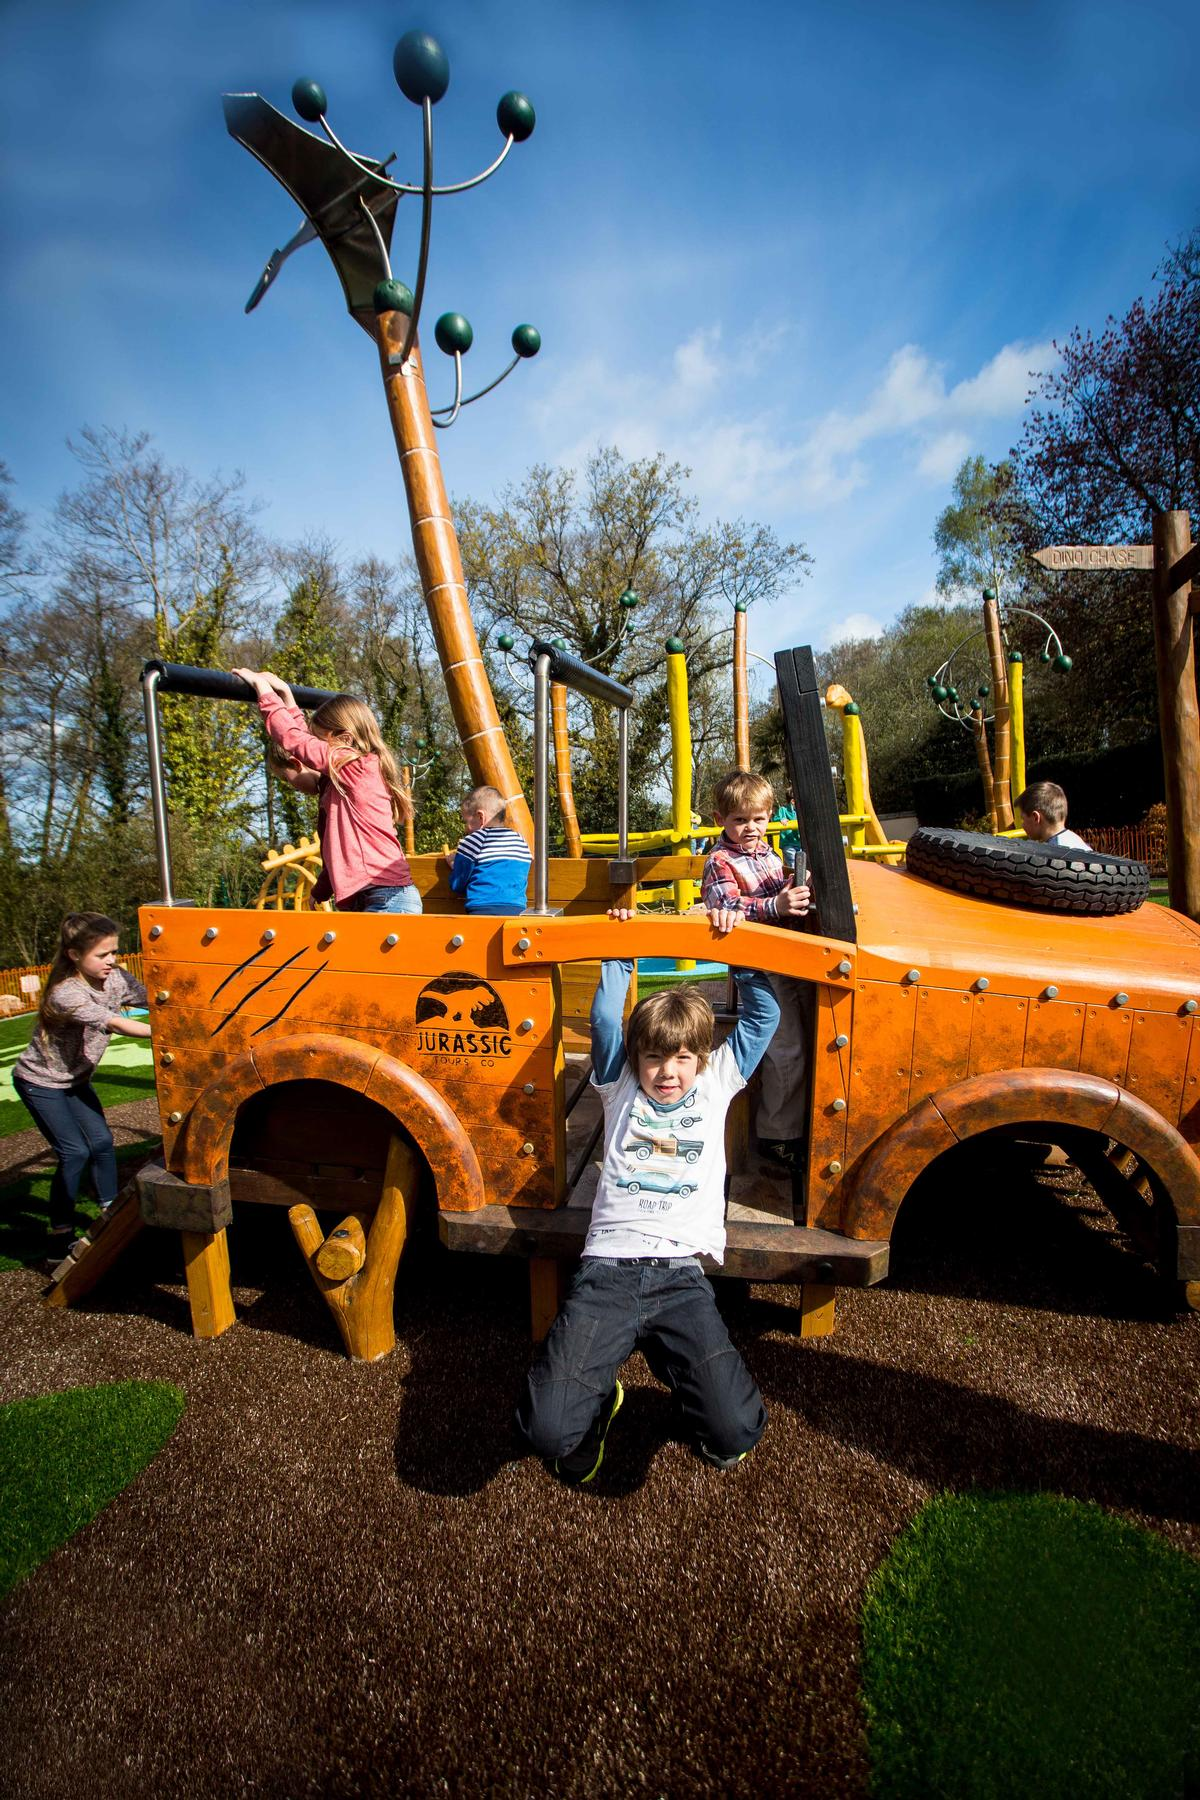 Dig for fossils in the Little Explorers adventure play area